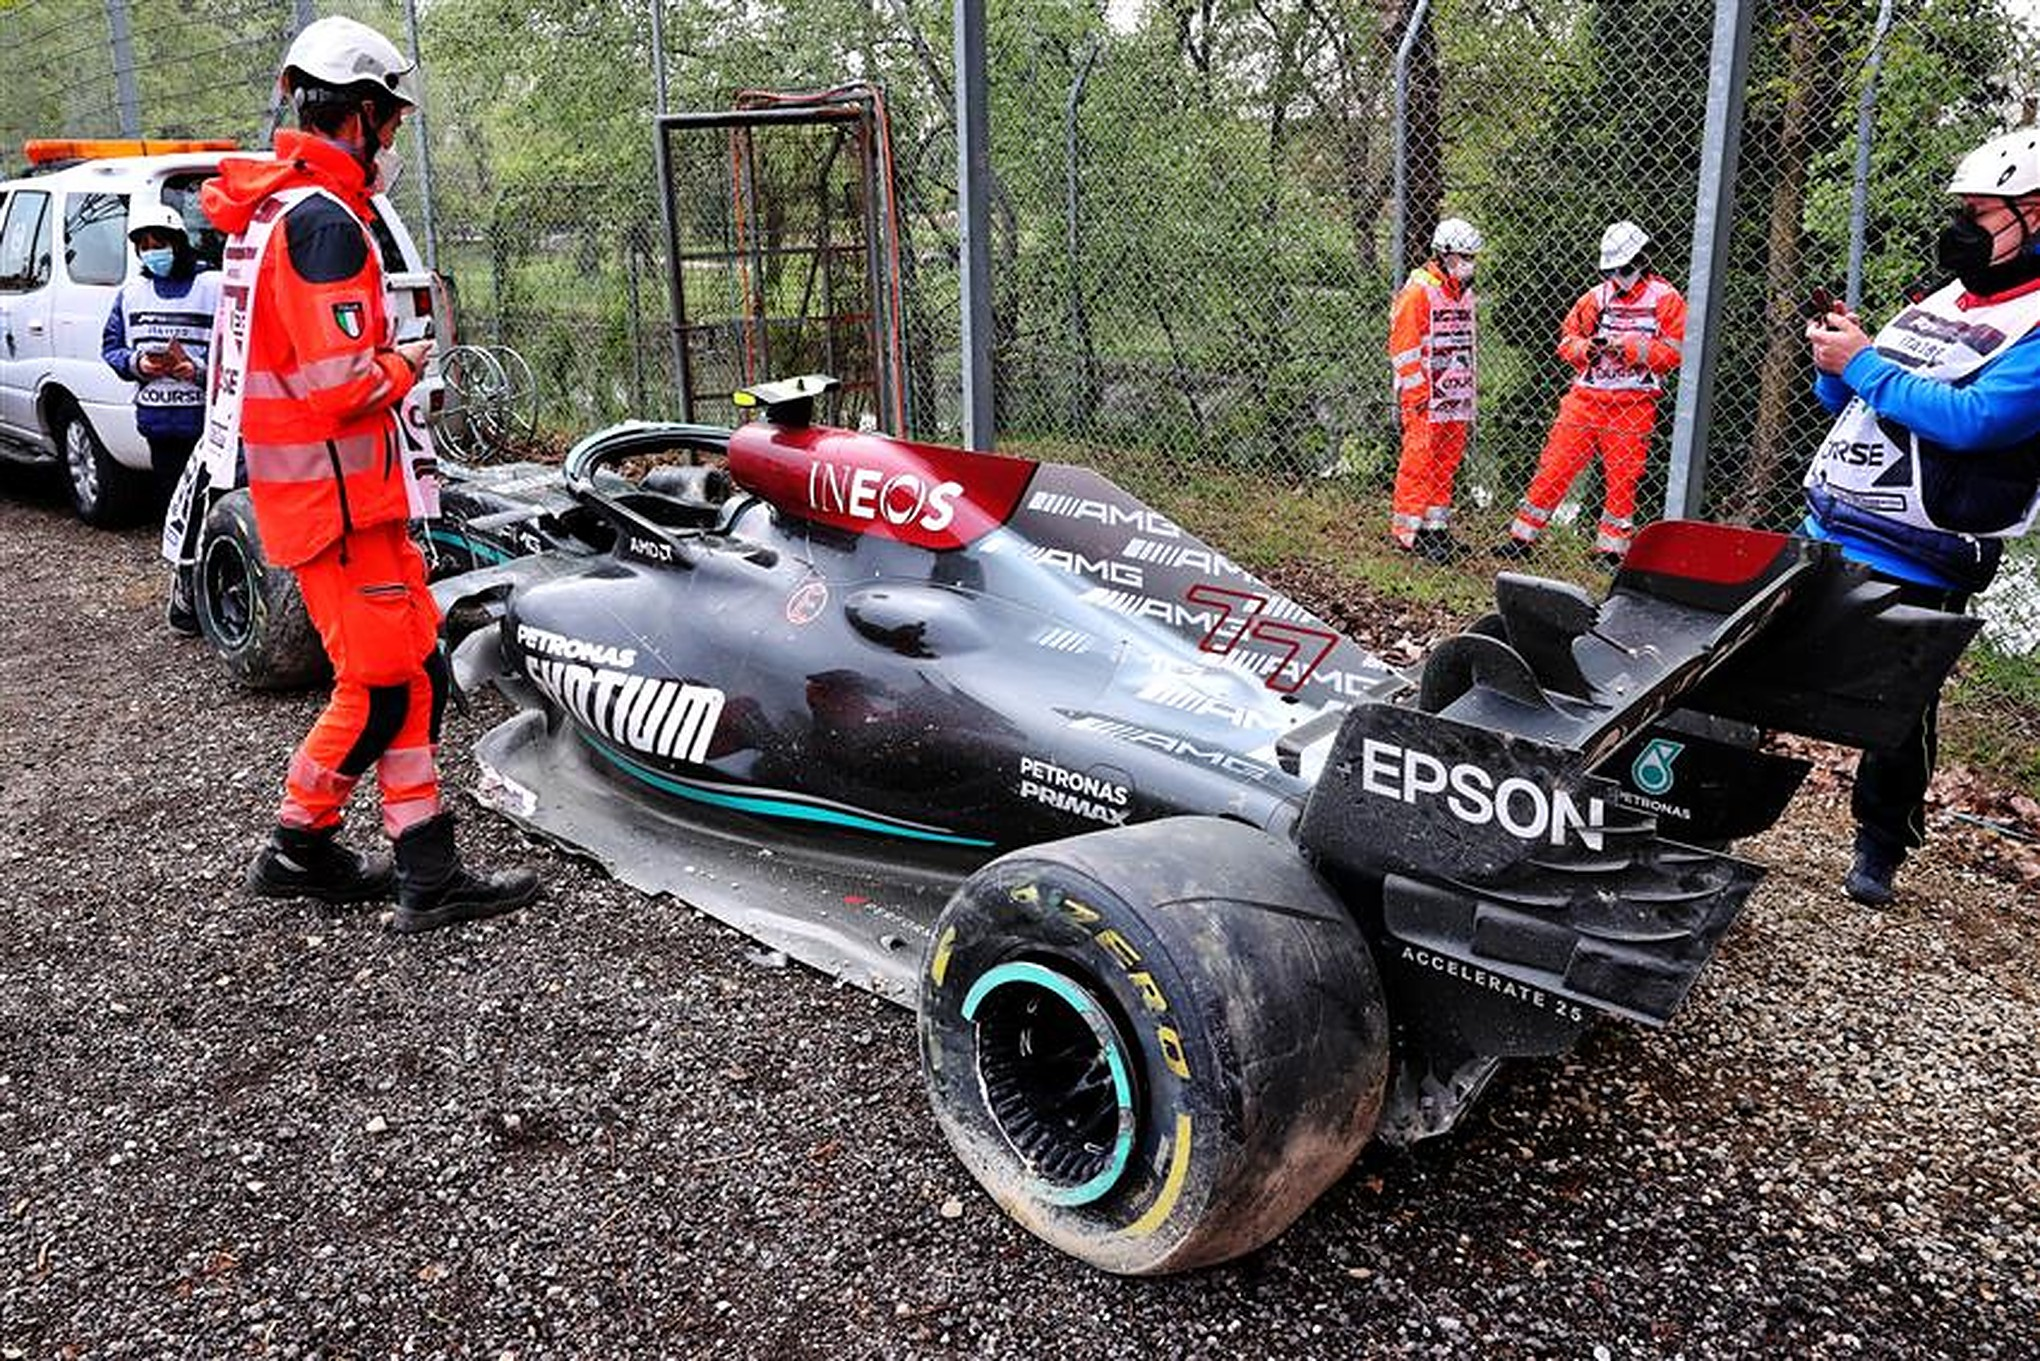 Valtteri Bottas' Wrecked Mercedes at Imola - Formula1news.co.uk